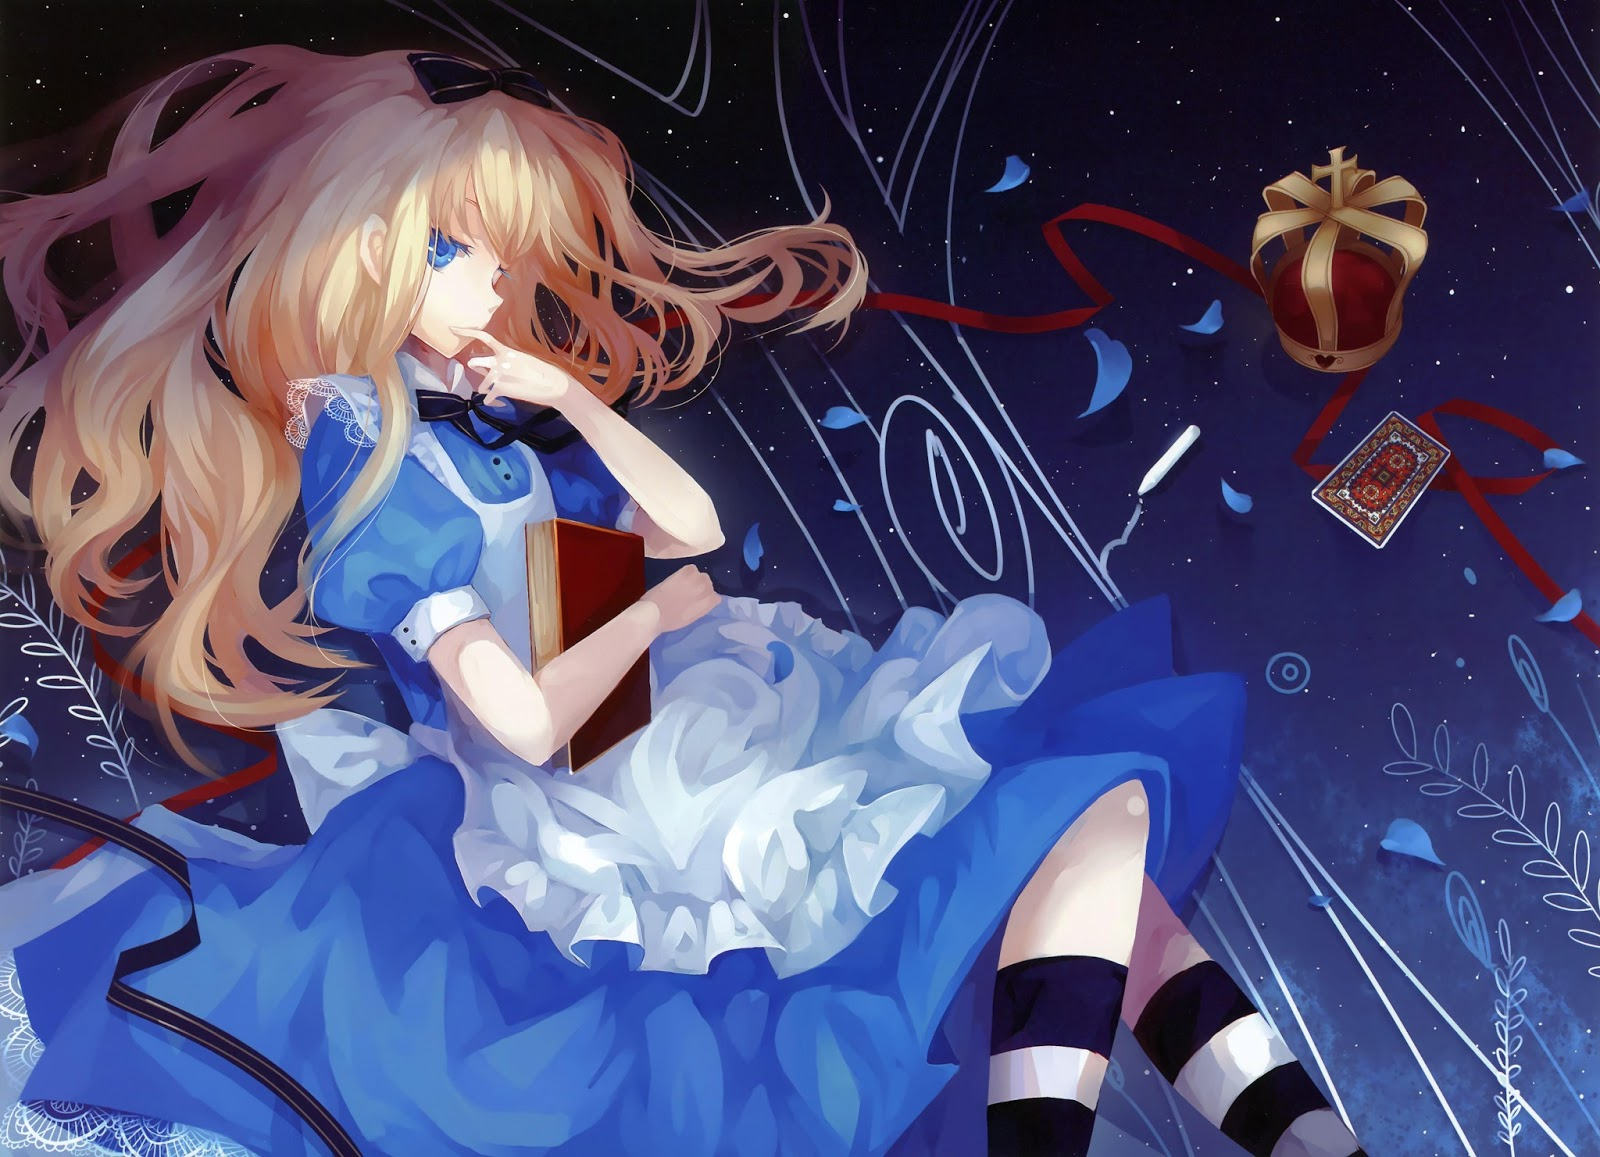 Free Download Alice In Wonderland Desktop Wallpapers 1600x1157